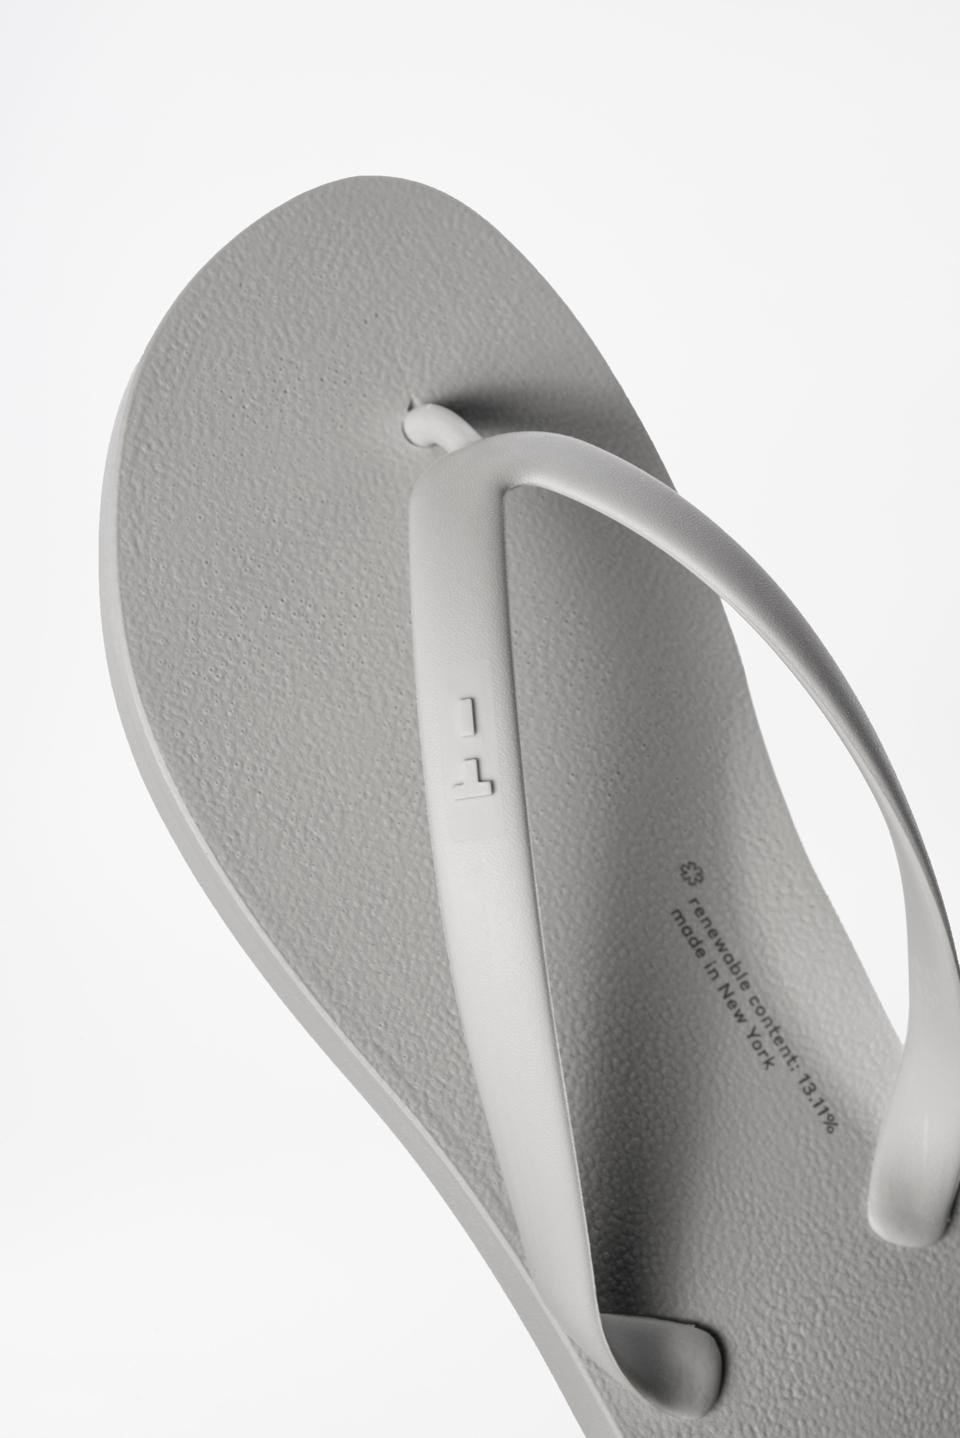 New GROW flip flops from TIDAL New York in Concrete.